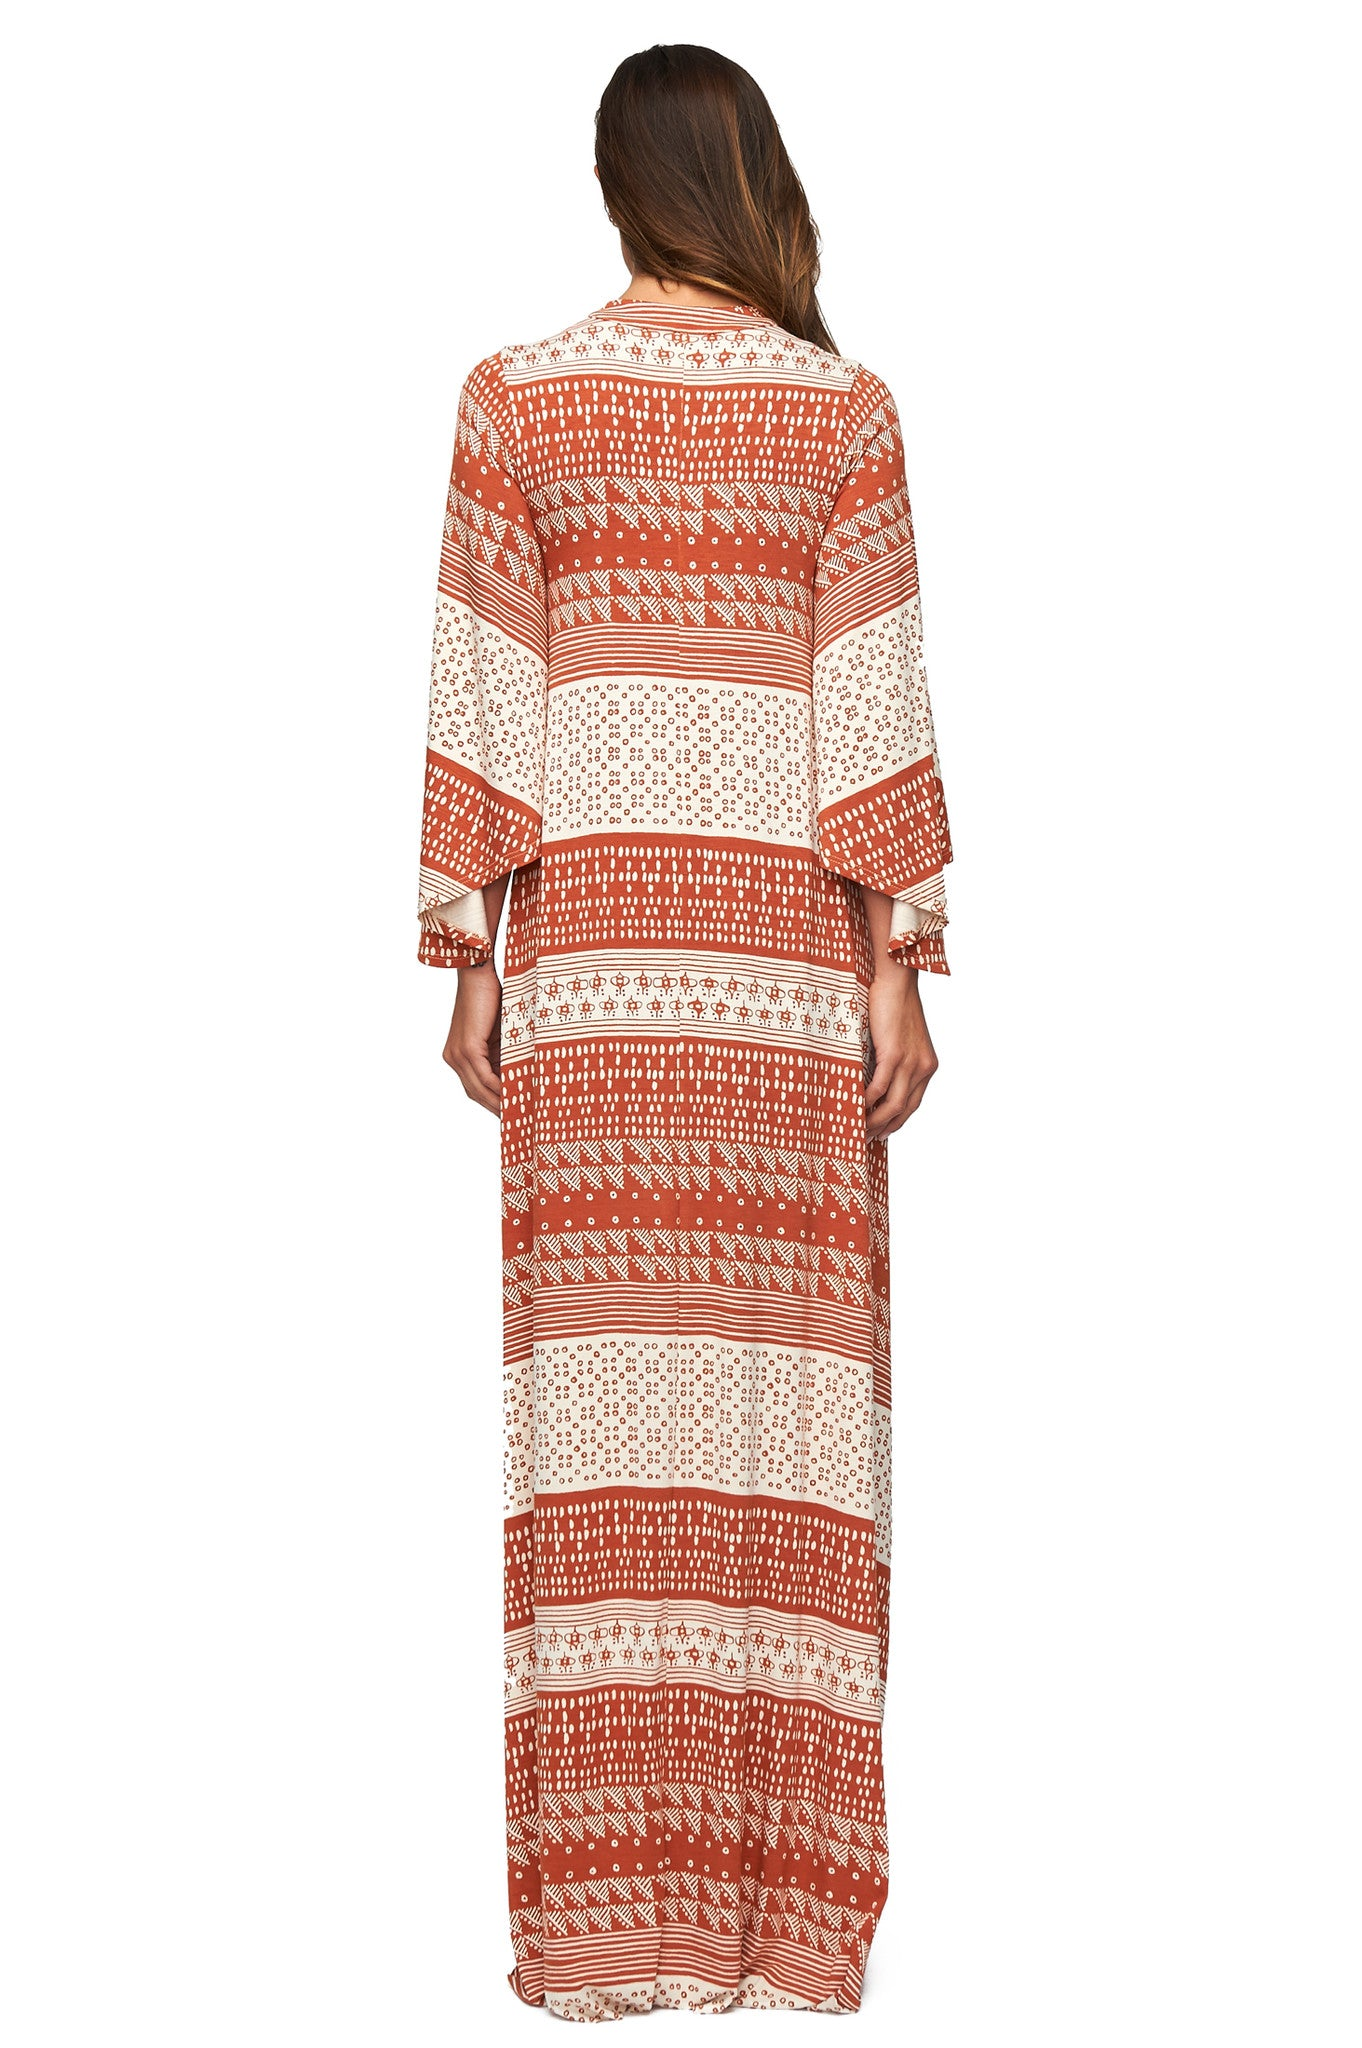 Rosaleen Dress - Copper Block Print